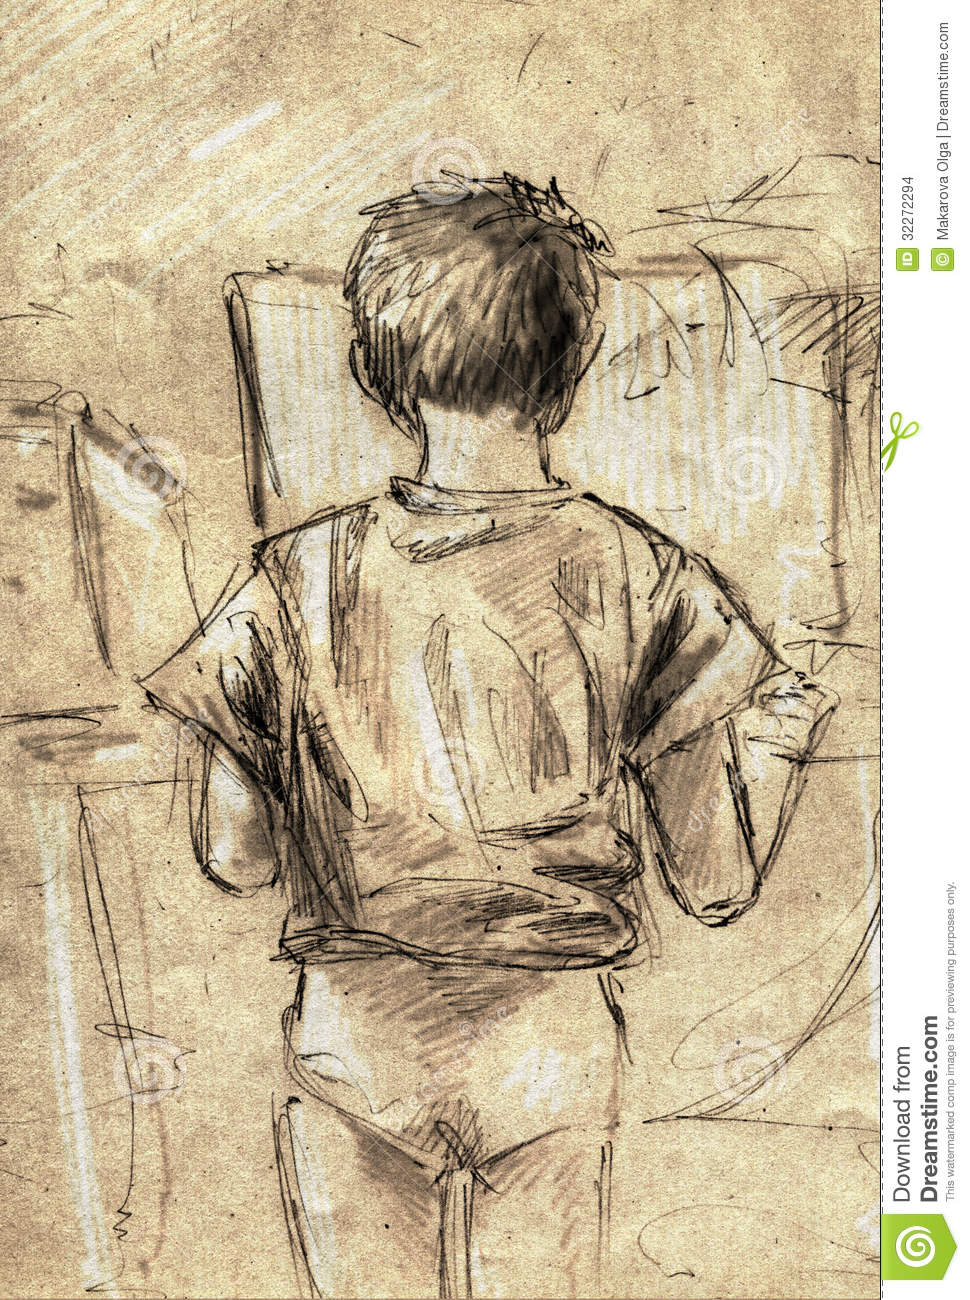 Sketch of a little boy using computer